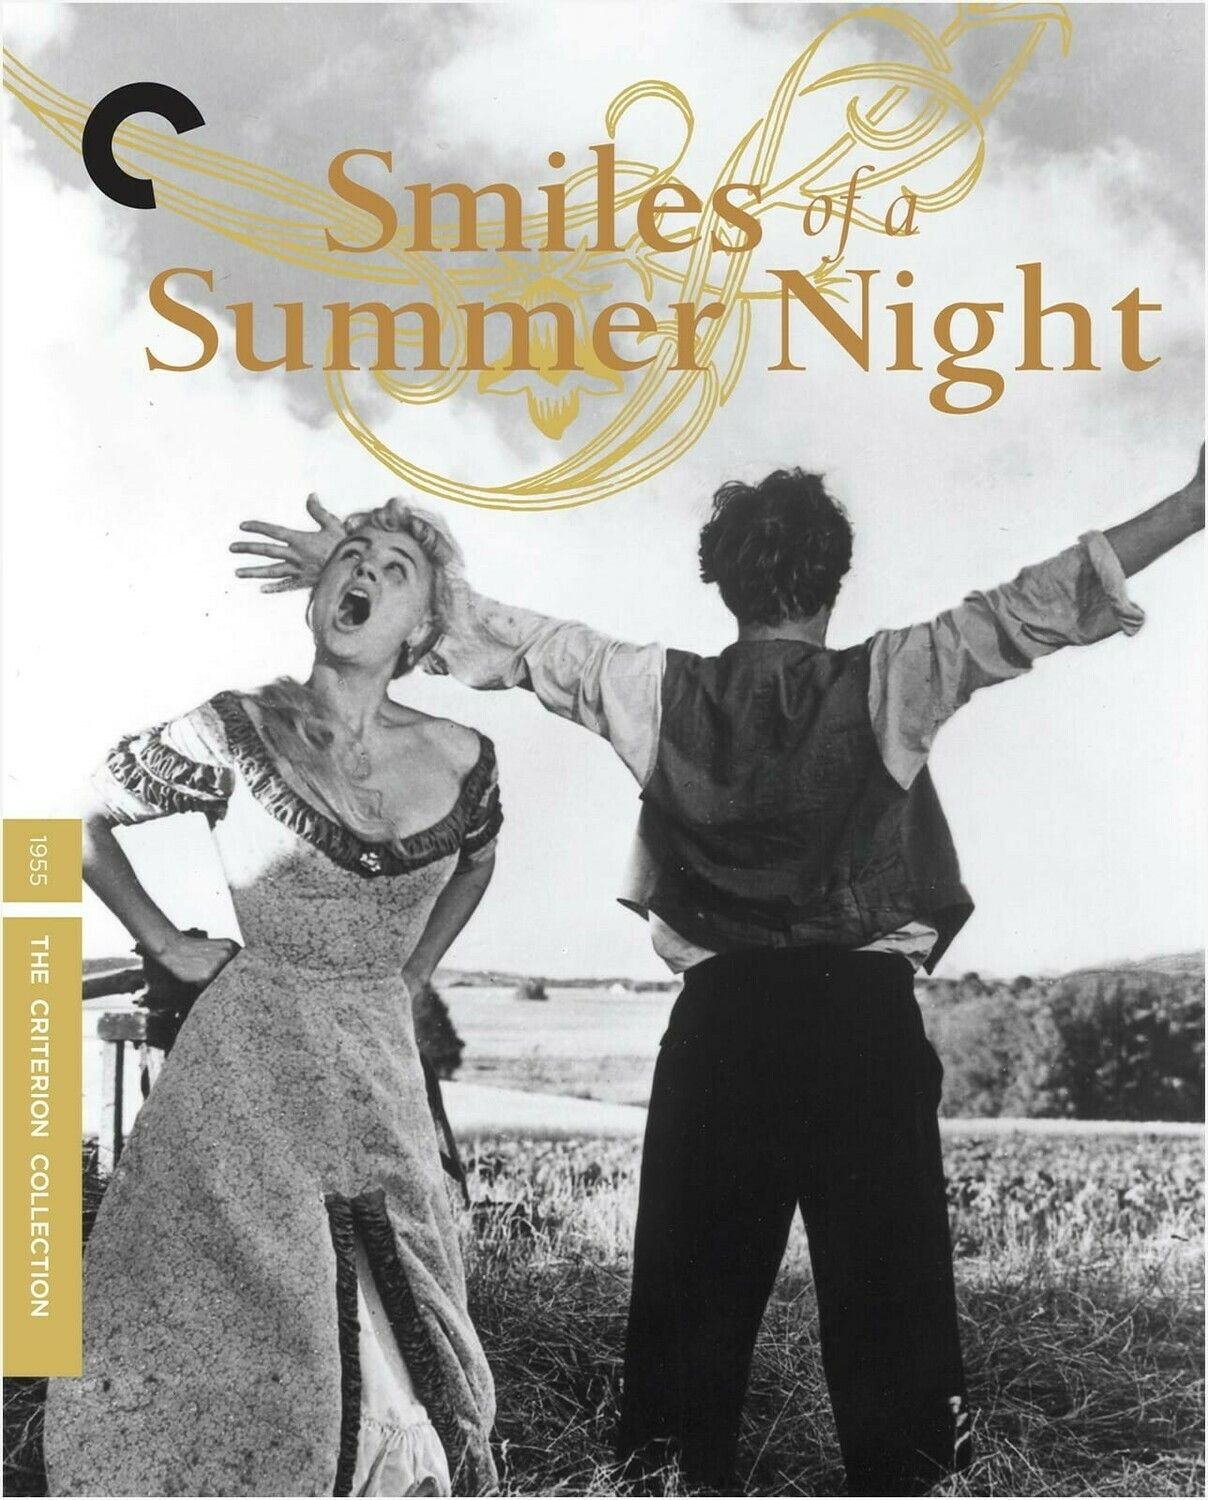 SMILES OF A SUMMER NIGHT - BLURAY